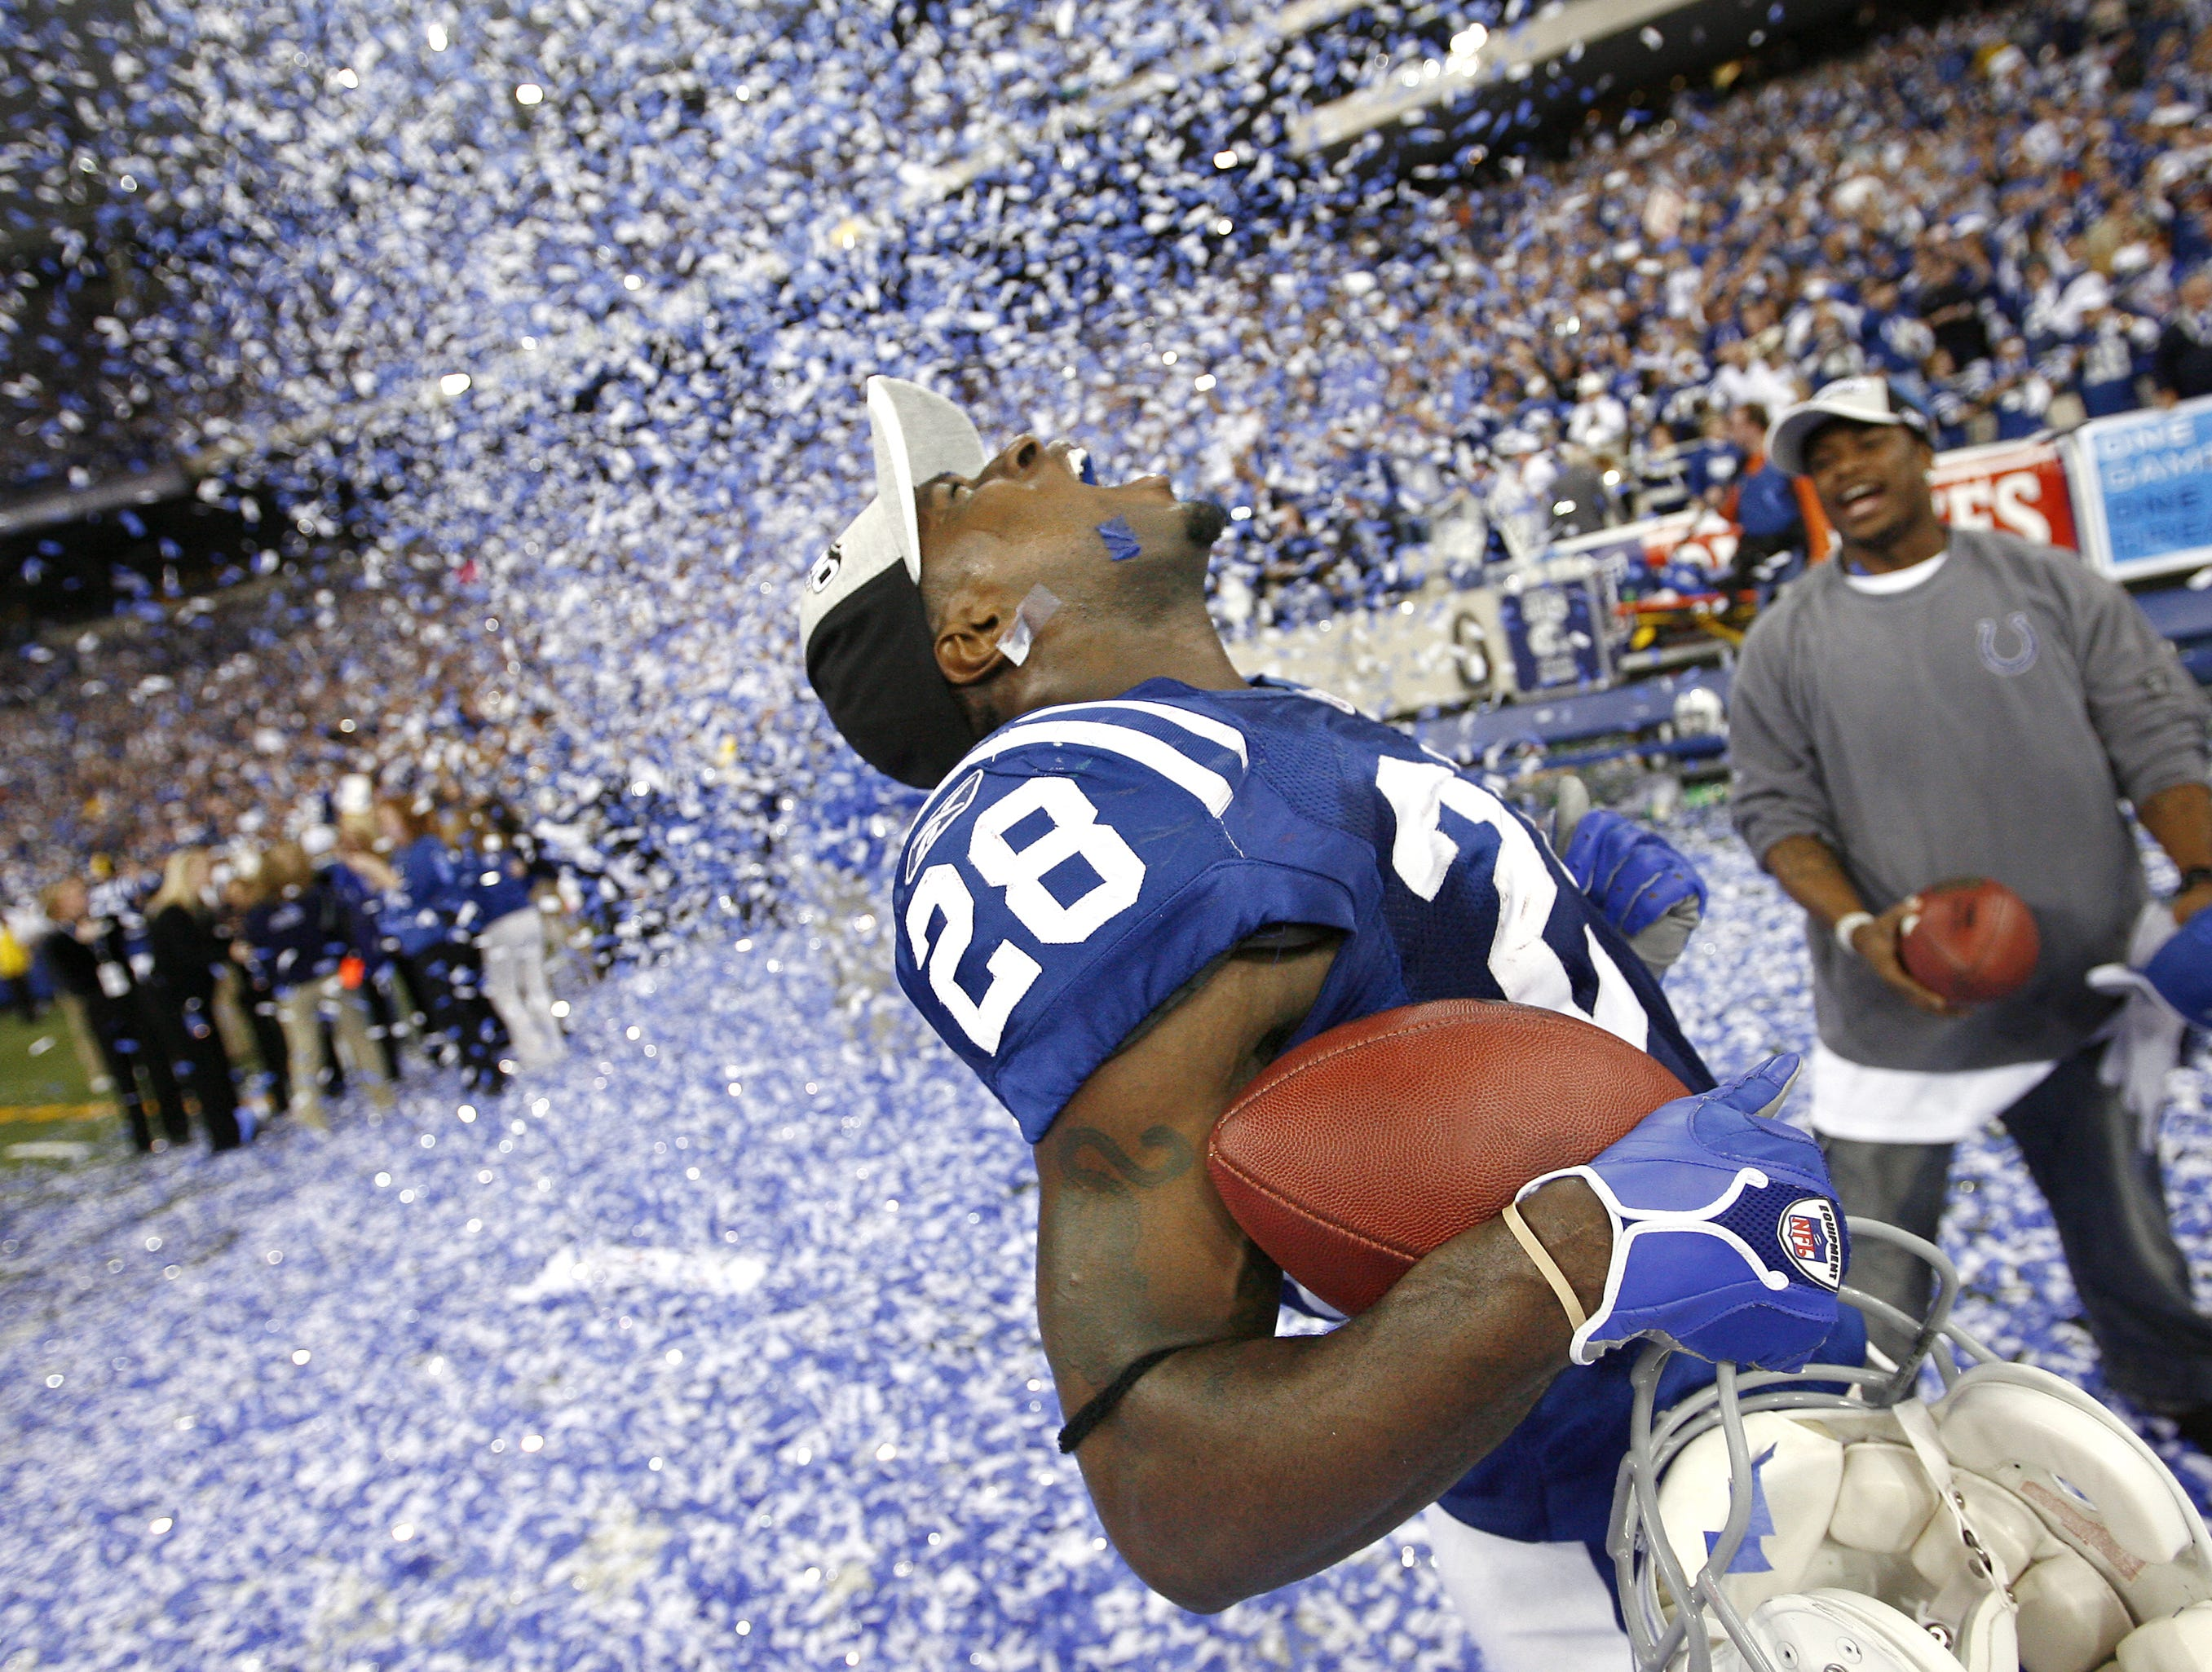 Colts defensive back Marlin Jackson, who intercepted the pass from a Tom Brady last attempt to score, screams in celebration in the confetti after the Colts won the AFC Championship game 38-34 over the New England Patriots at the RCA Dome on January 21, 2007.